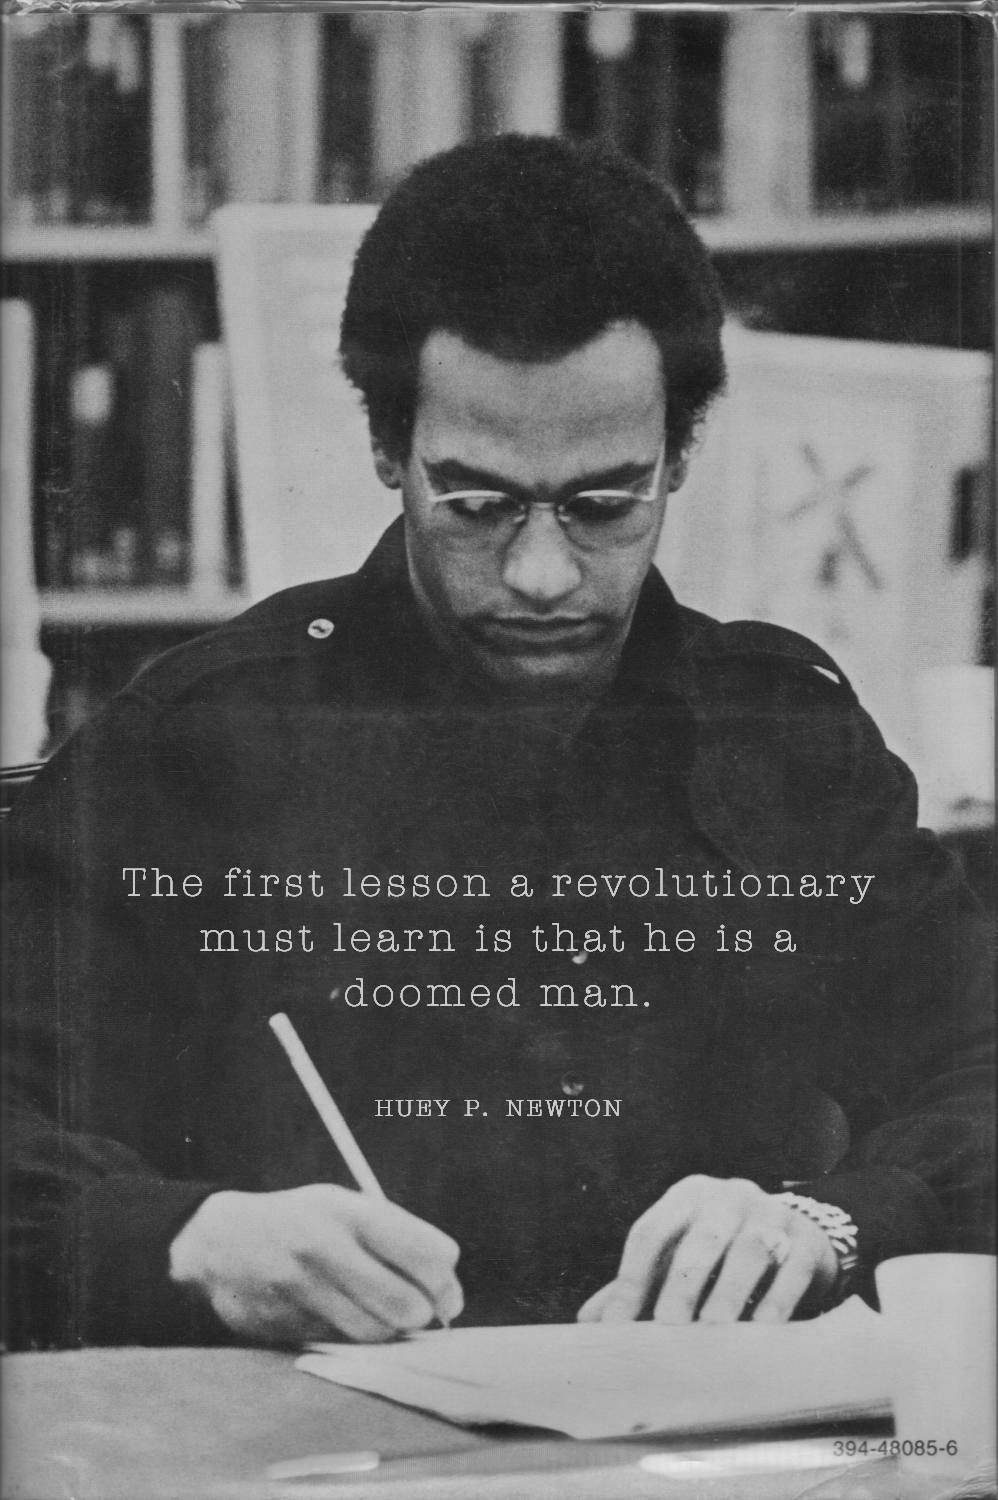 """The first lesson a revolutionary must learn is that he is a doomed man."" – Huey P. Newton, founder of the Black Panther Party [998×1500]"